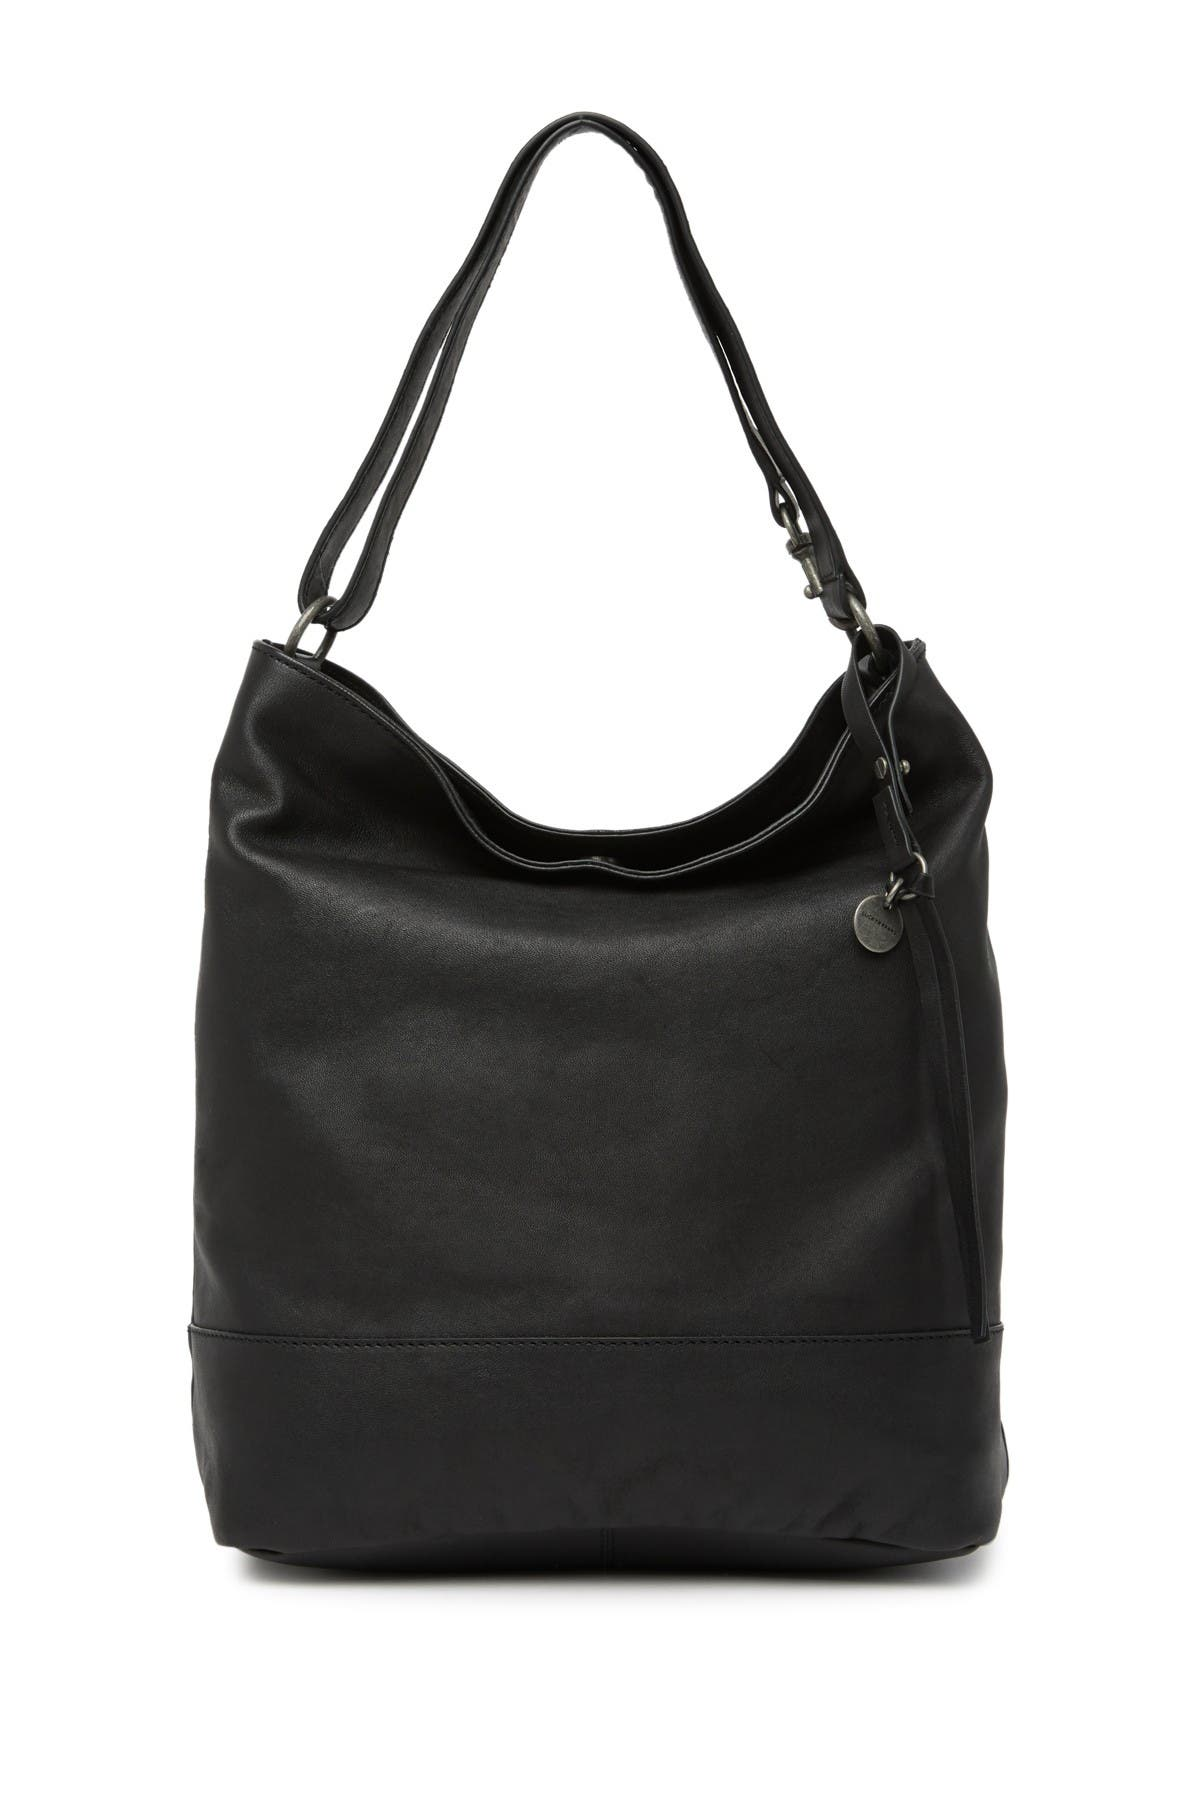 Image of Lucky Brand Lina Leather Bucket Shoulder Bag